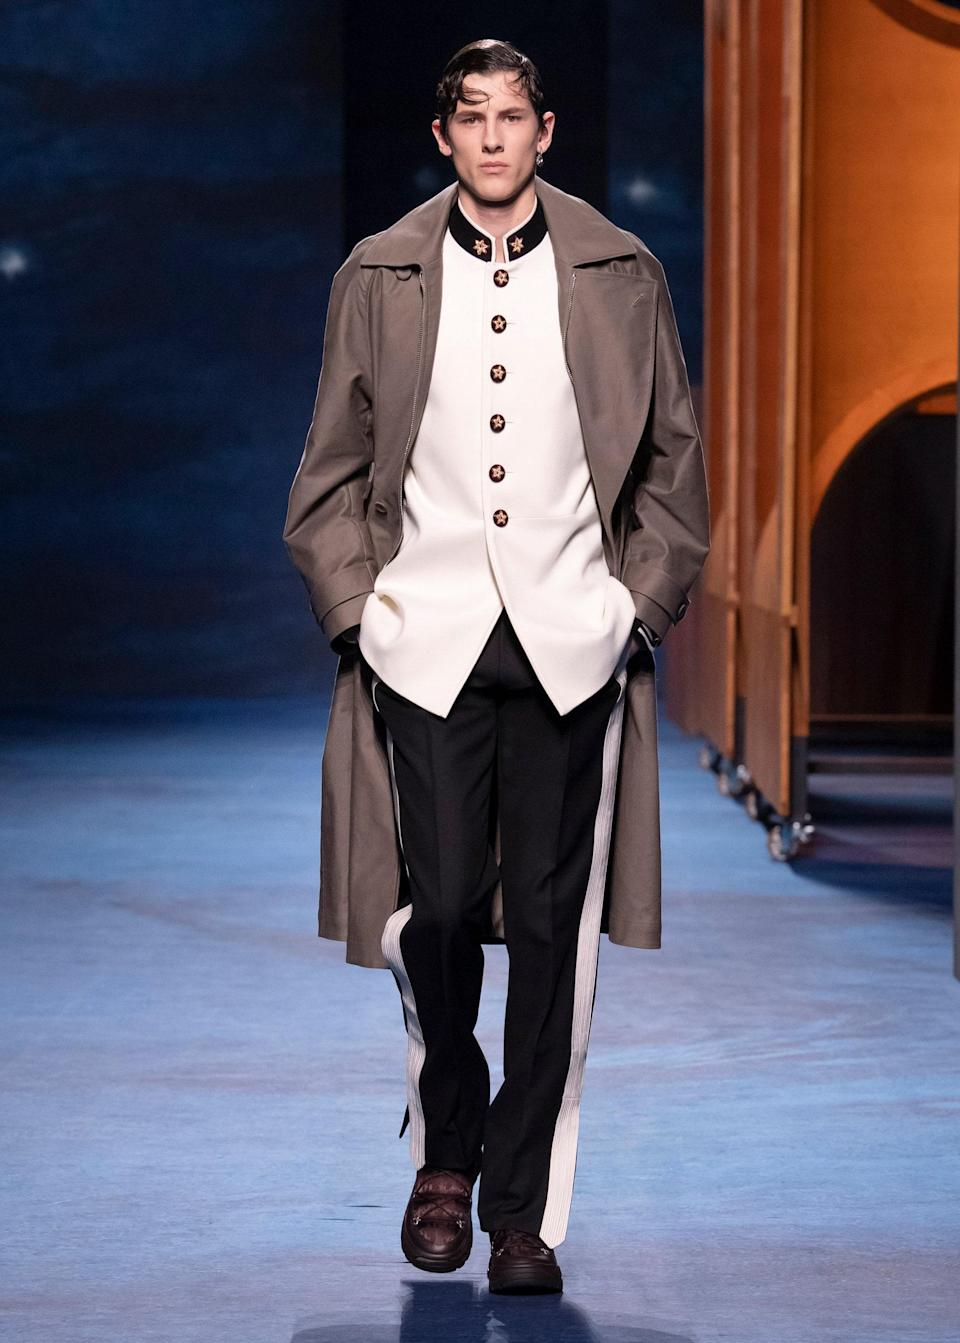 Dior,Fall Winter 2021-22,menswear, pret a porter